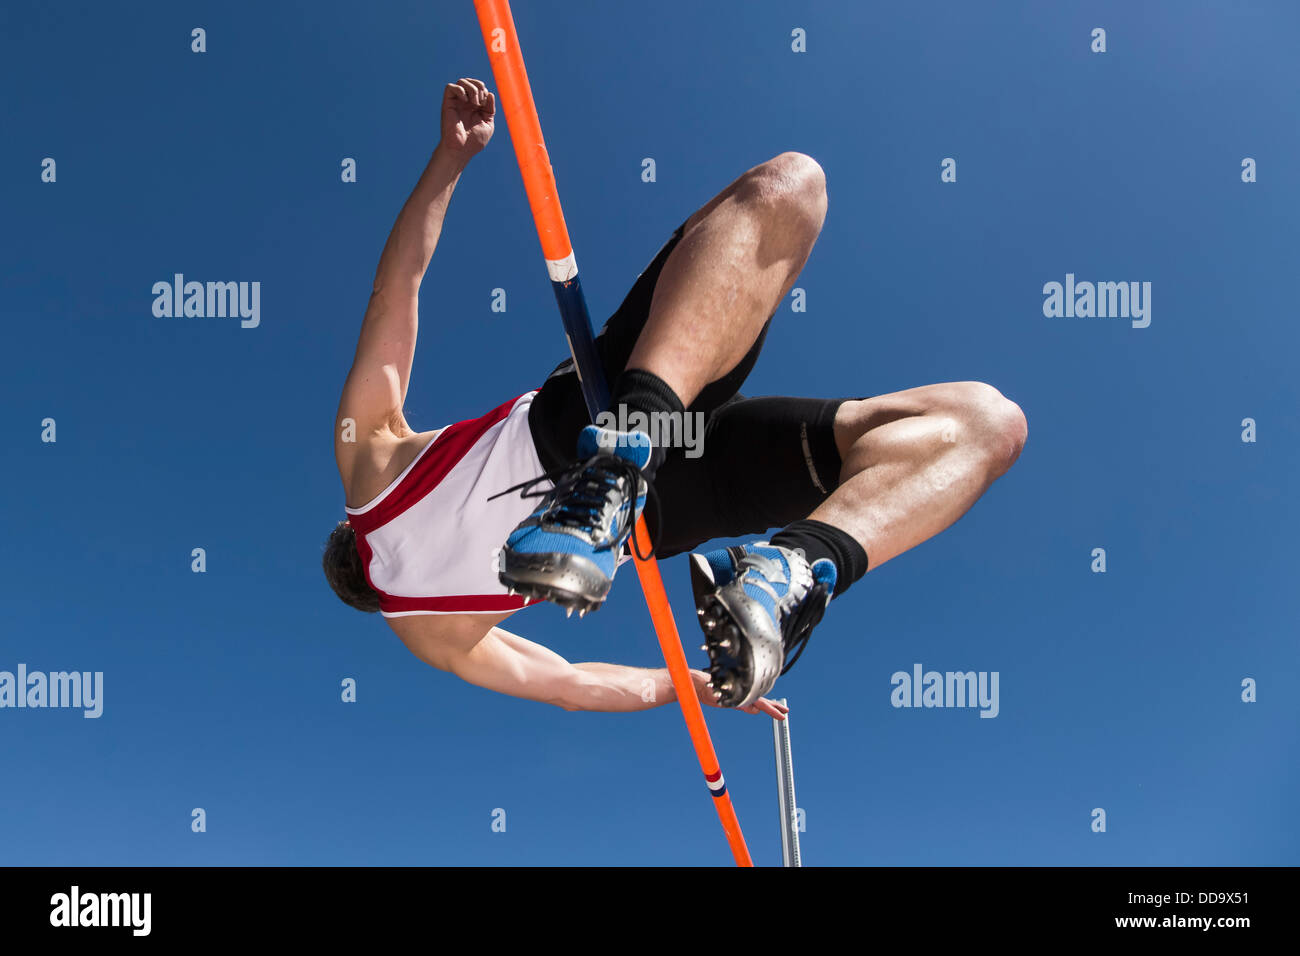 Germany, Mature man curling over high jump - Stock Image